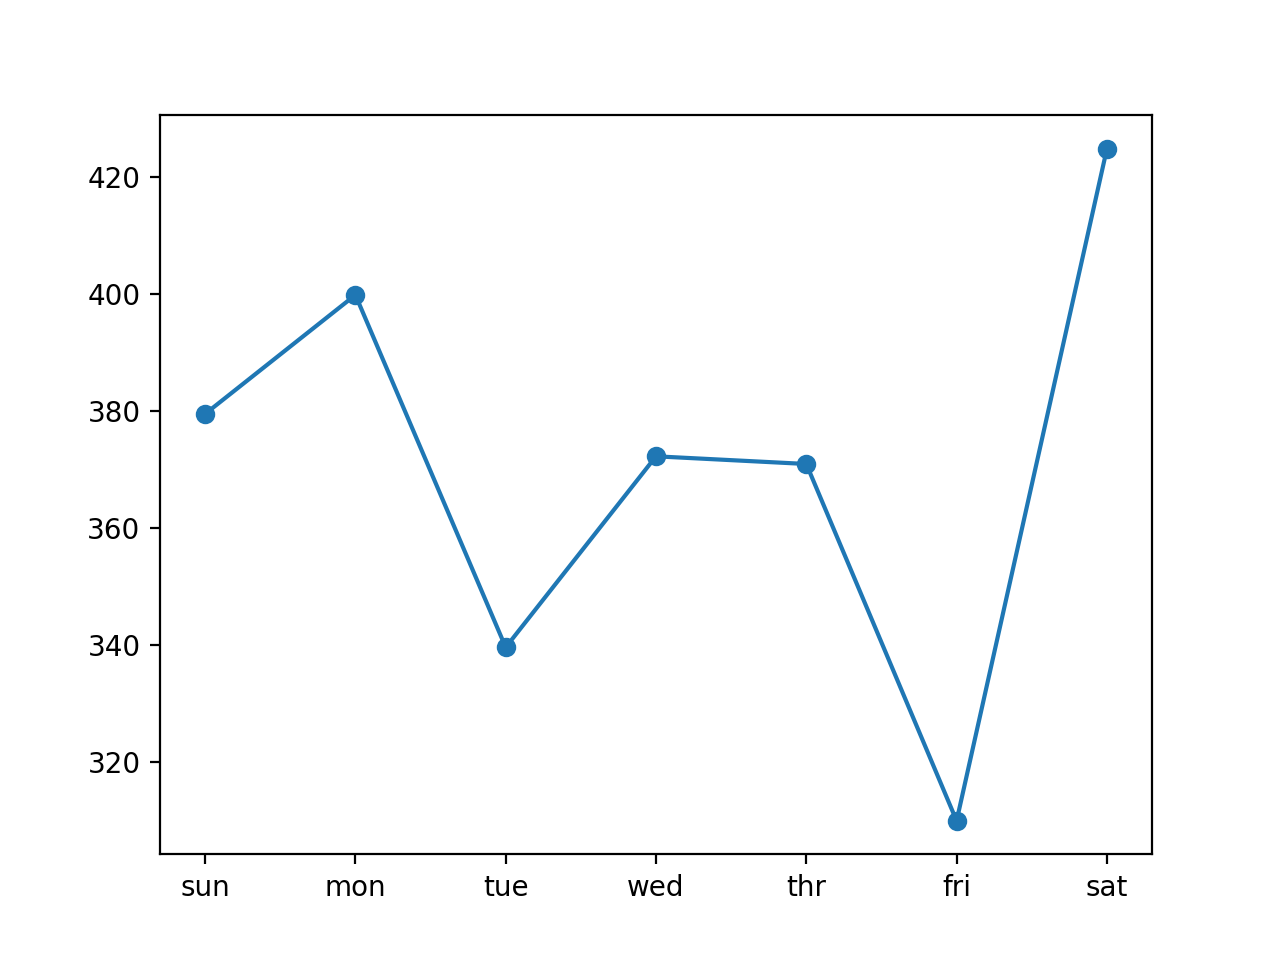 Line Plot of RMSE per Day for Univariate Encoder-Decoder LSTM with 14-day Inputs